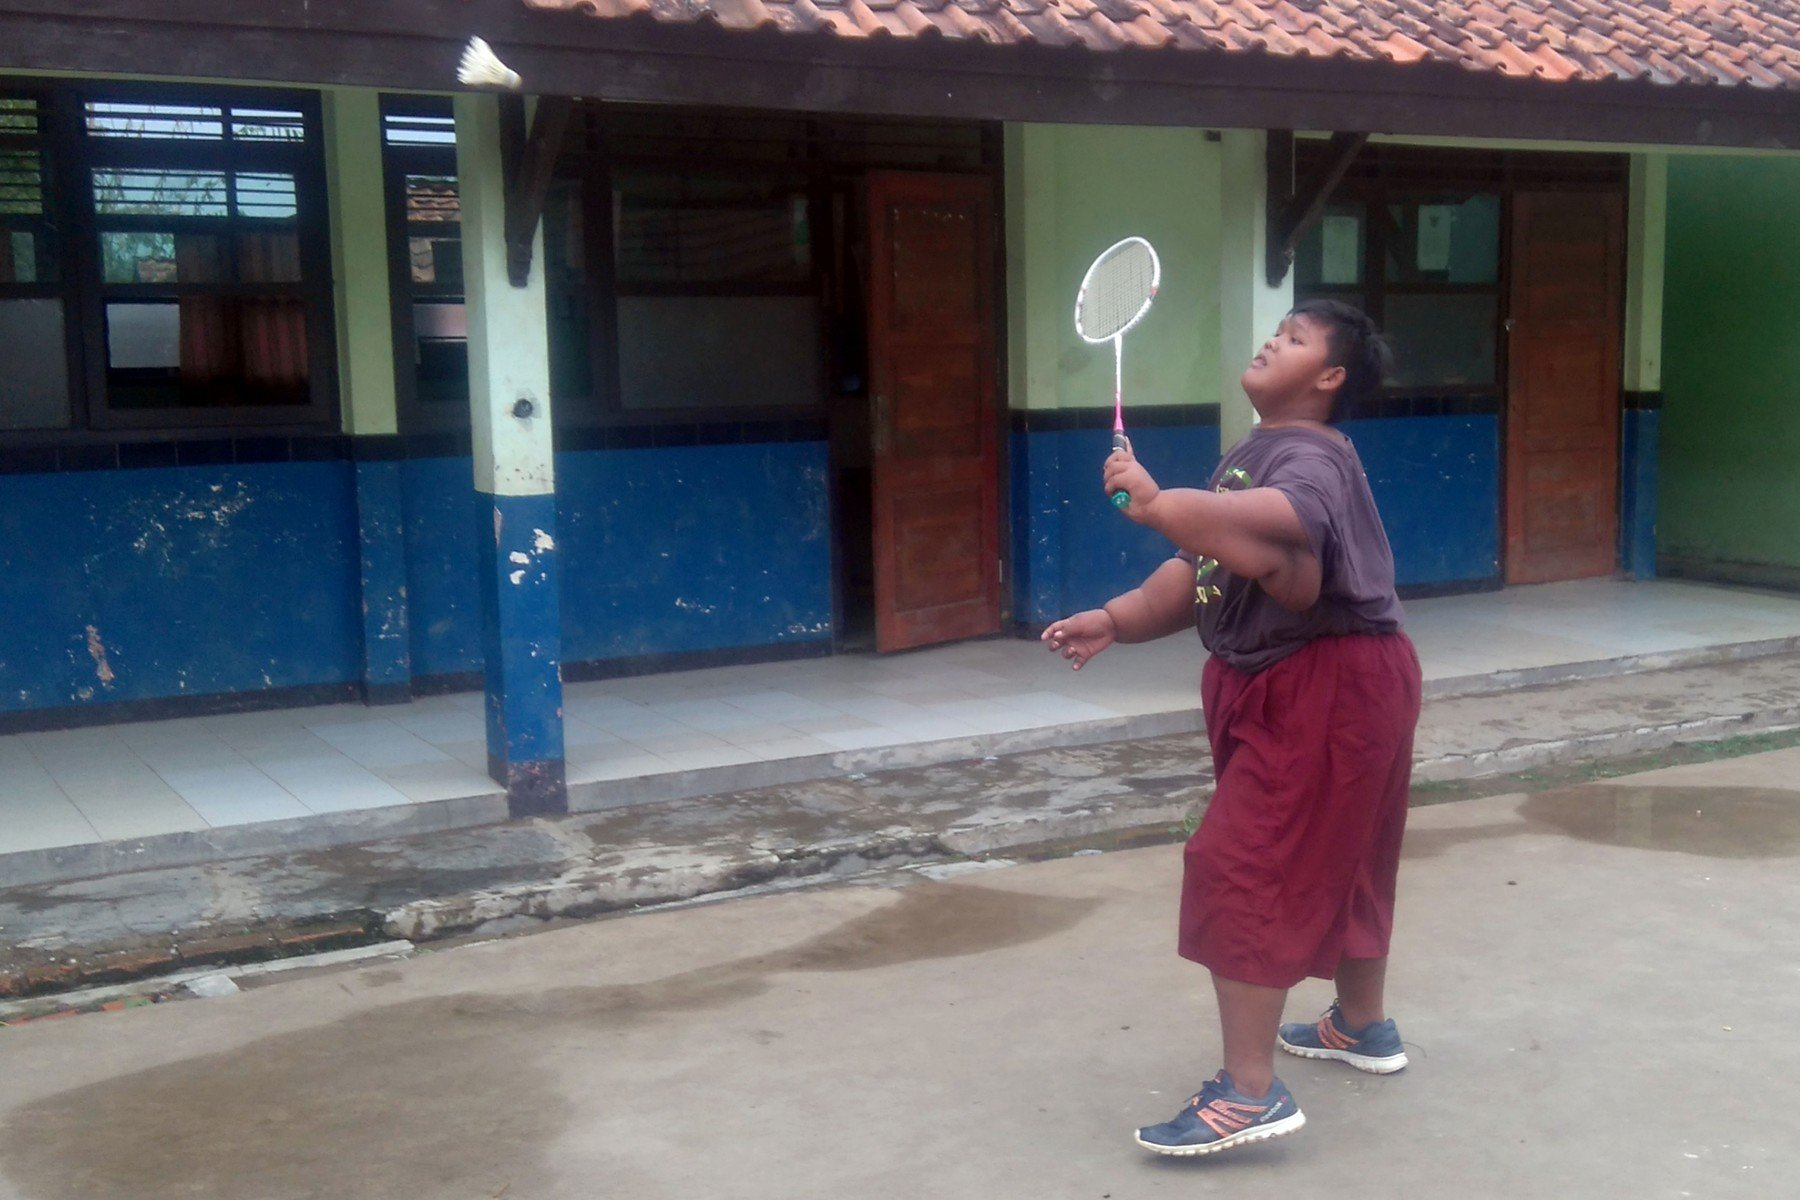 (PICTURED: Arya Permana,12, from boy from West Java Province, Indonesia, playing badminton) -  Arya Permana, the worlds fattest boy who was so obese to not even move on his own has remarkably shed 167 pounds and now plays badmintonlikean ace. At 30st 23lbs, the thenten-year-old Indonesian boy was so severely big for his age that he could not move on his own, let alone walk, sit or play.Aryasever-growing giant frame meant that no garment fit him and he was mostly draped in a sarong.He never attended classes as walking to the school was an uphill task for him., Image: 361179068, License: Rights-managed, Restrictions: , Model Release: no, Credit line: Profimedia, Caters News